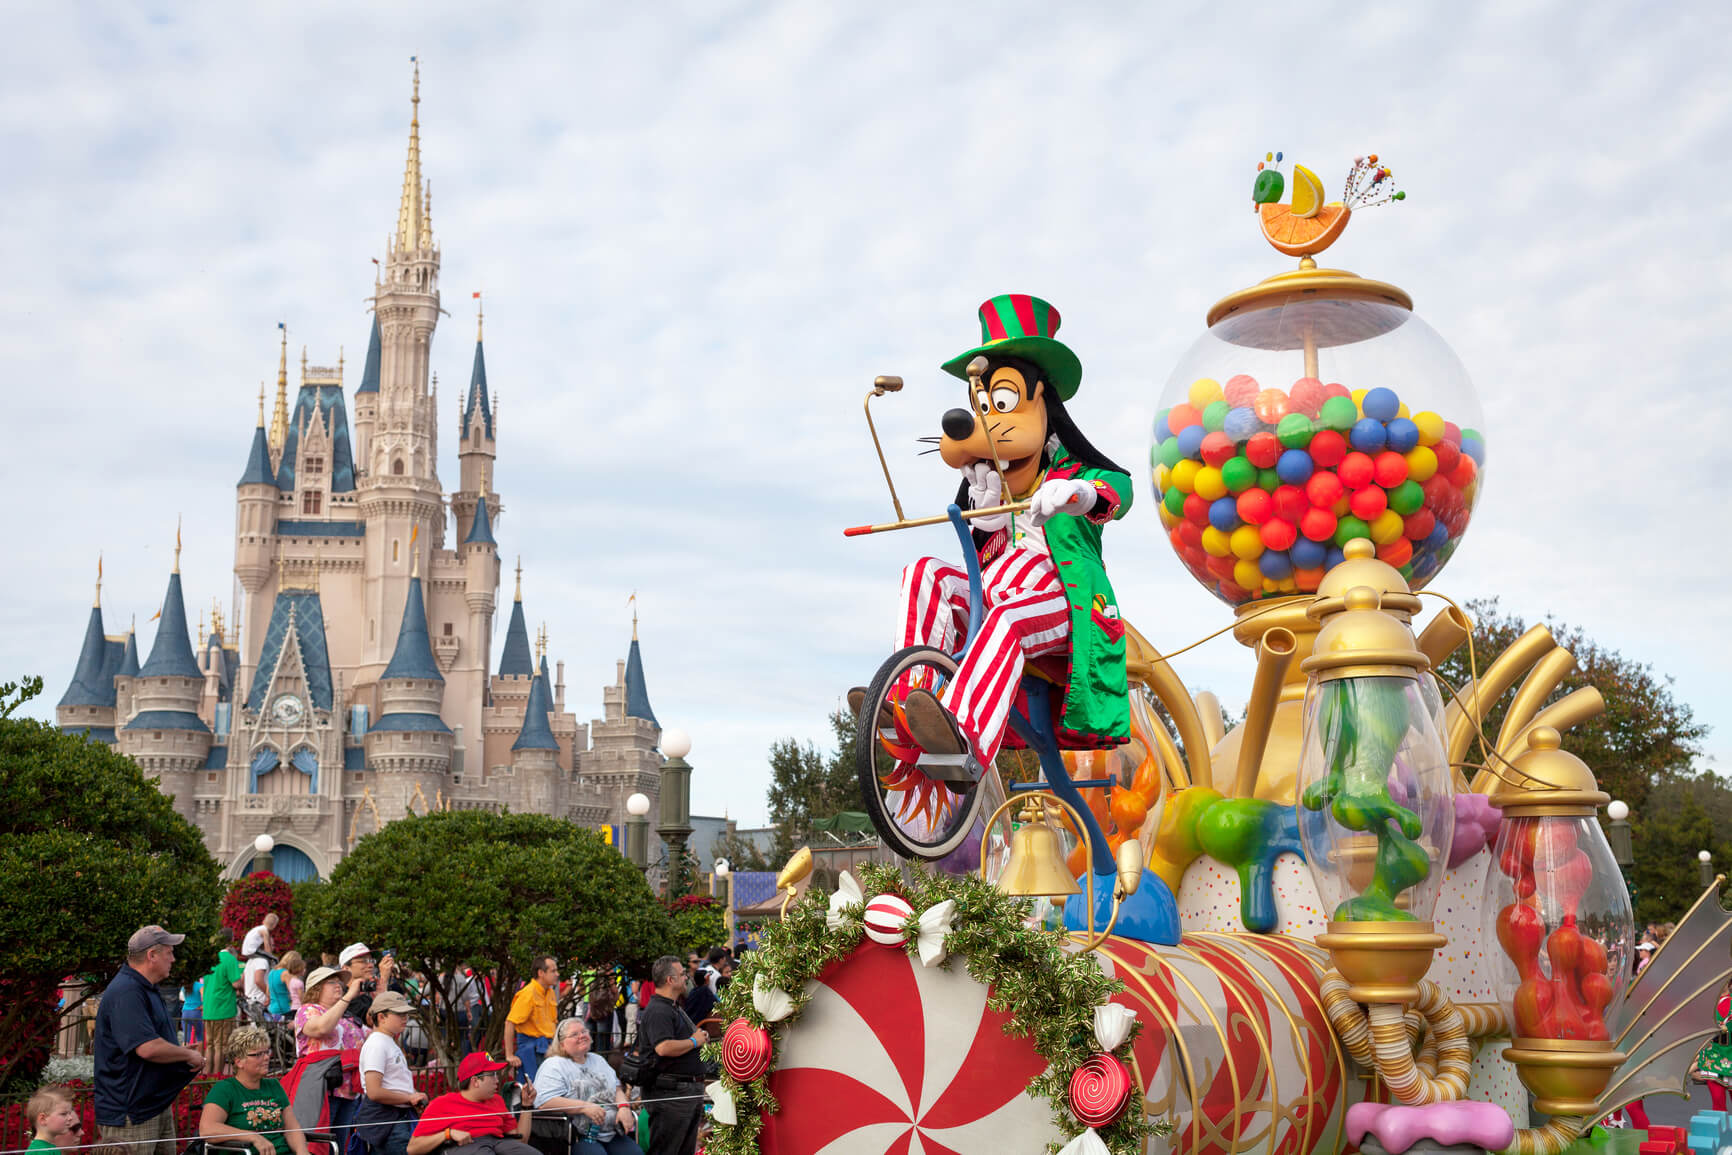 **PRICE DROP** SUMMER: Non-stop from Los Angeles to Orlando, Florida (& vice versa) for only $86 roundtrip (Aug dates)